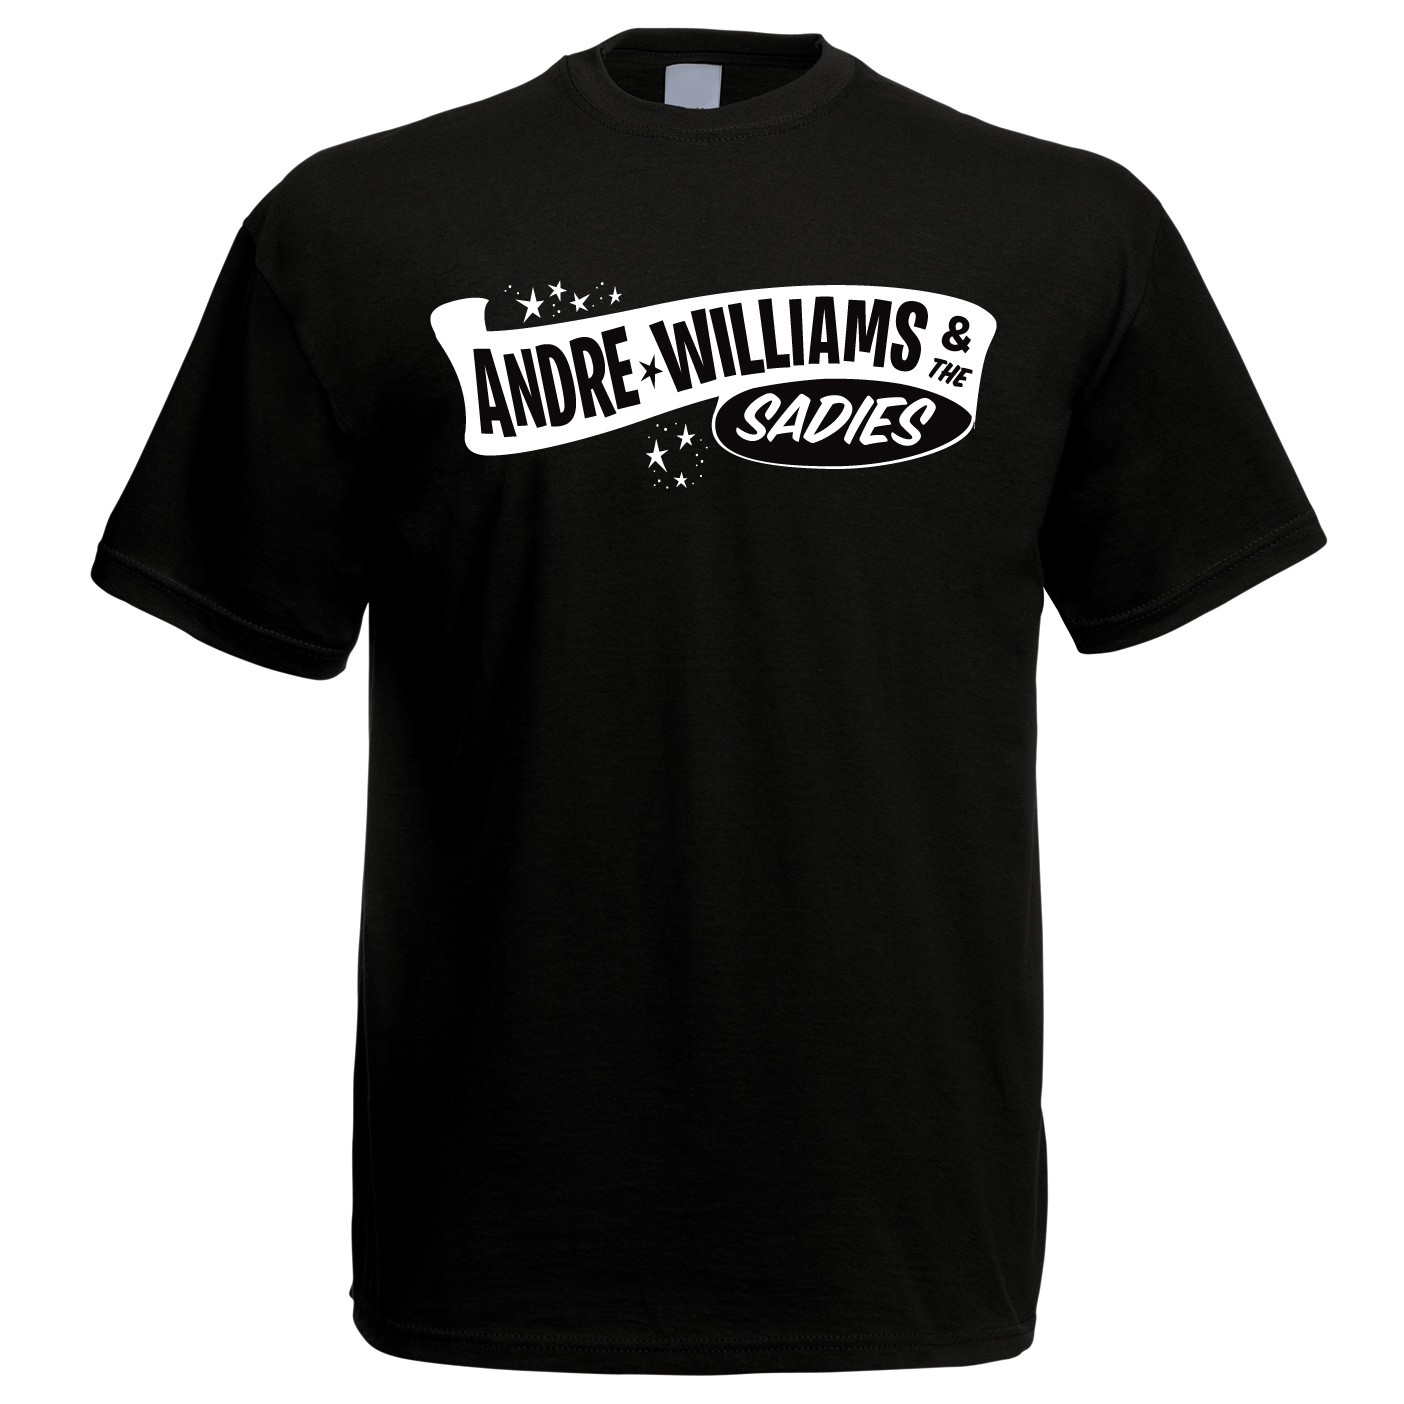 Andre Williams & The Sadies - Night & Day - T-Shirt